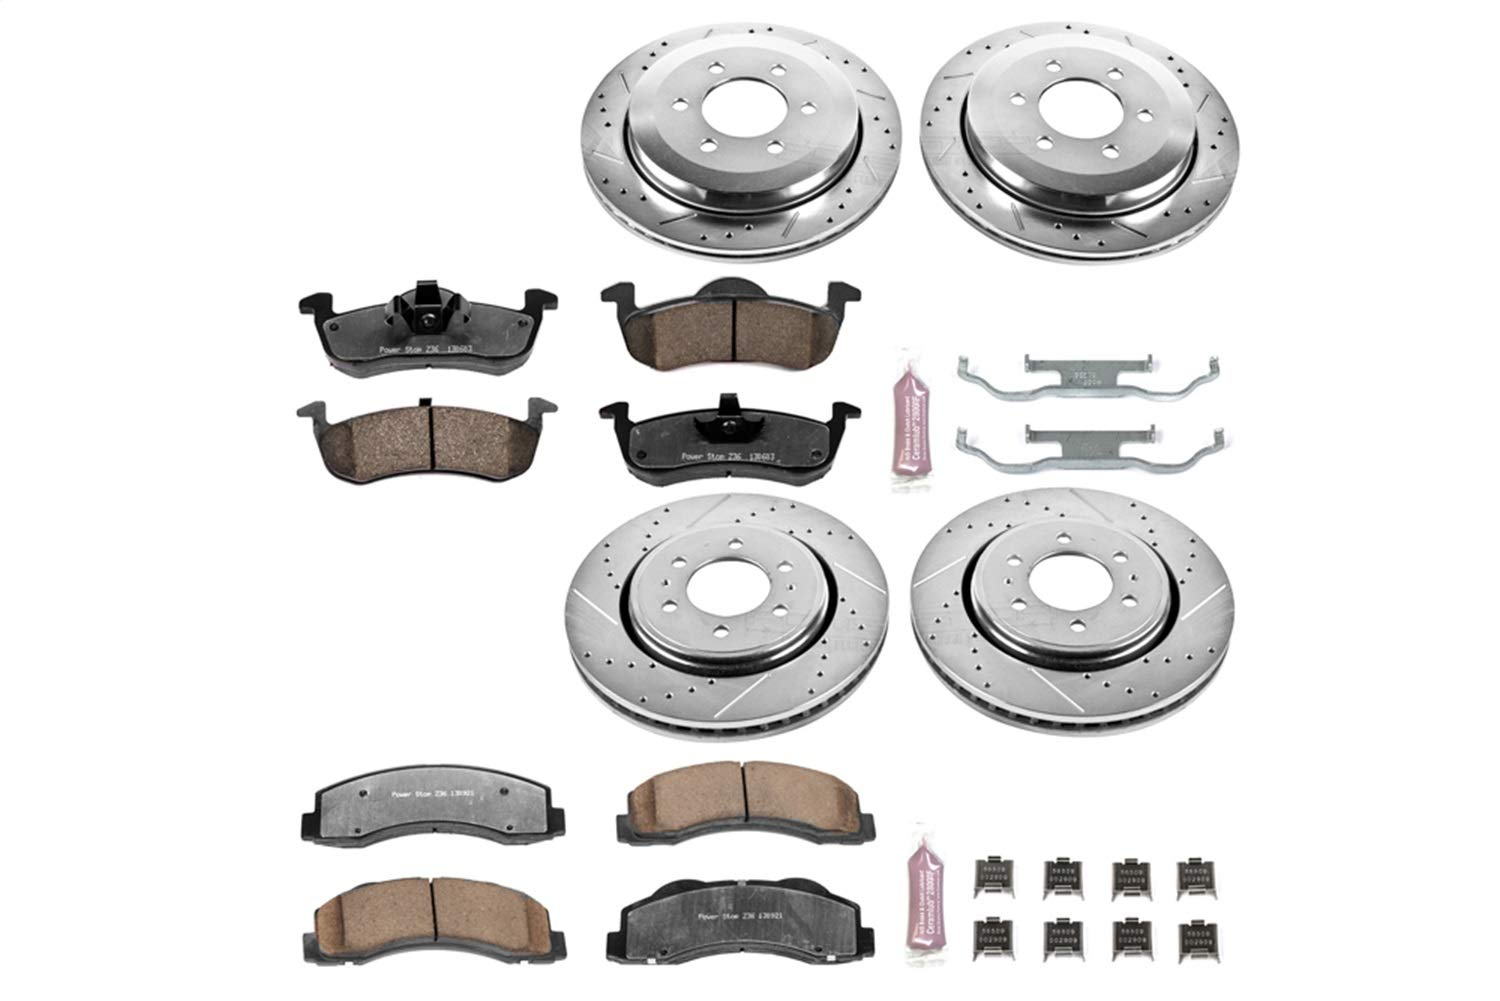 Power Stop K5577-36 Z36 Truck /& Tow Front and Rear Brake Kit